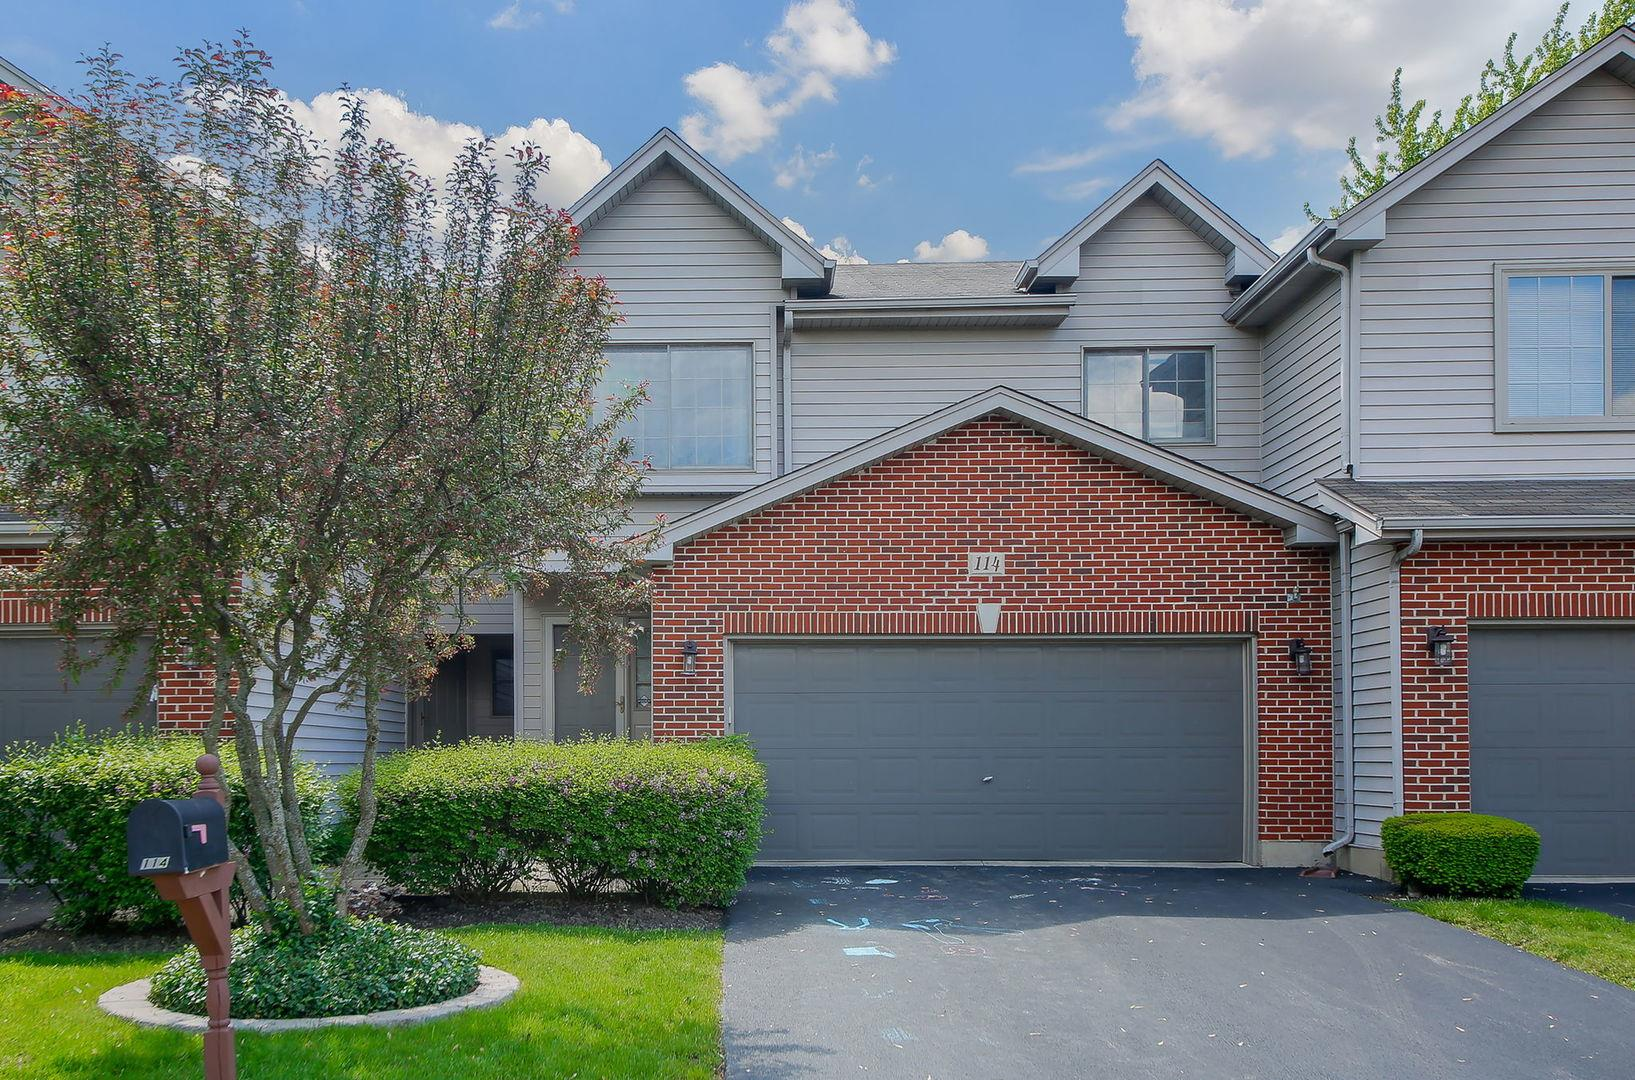 114 DEER RUN Lane #114, Elgin, IL 60120 - #: 10740508